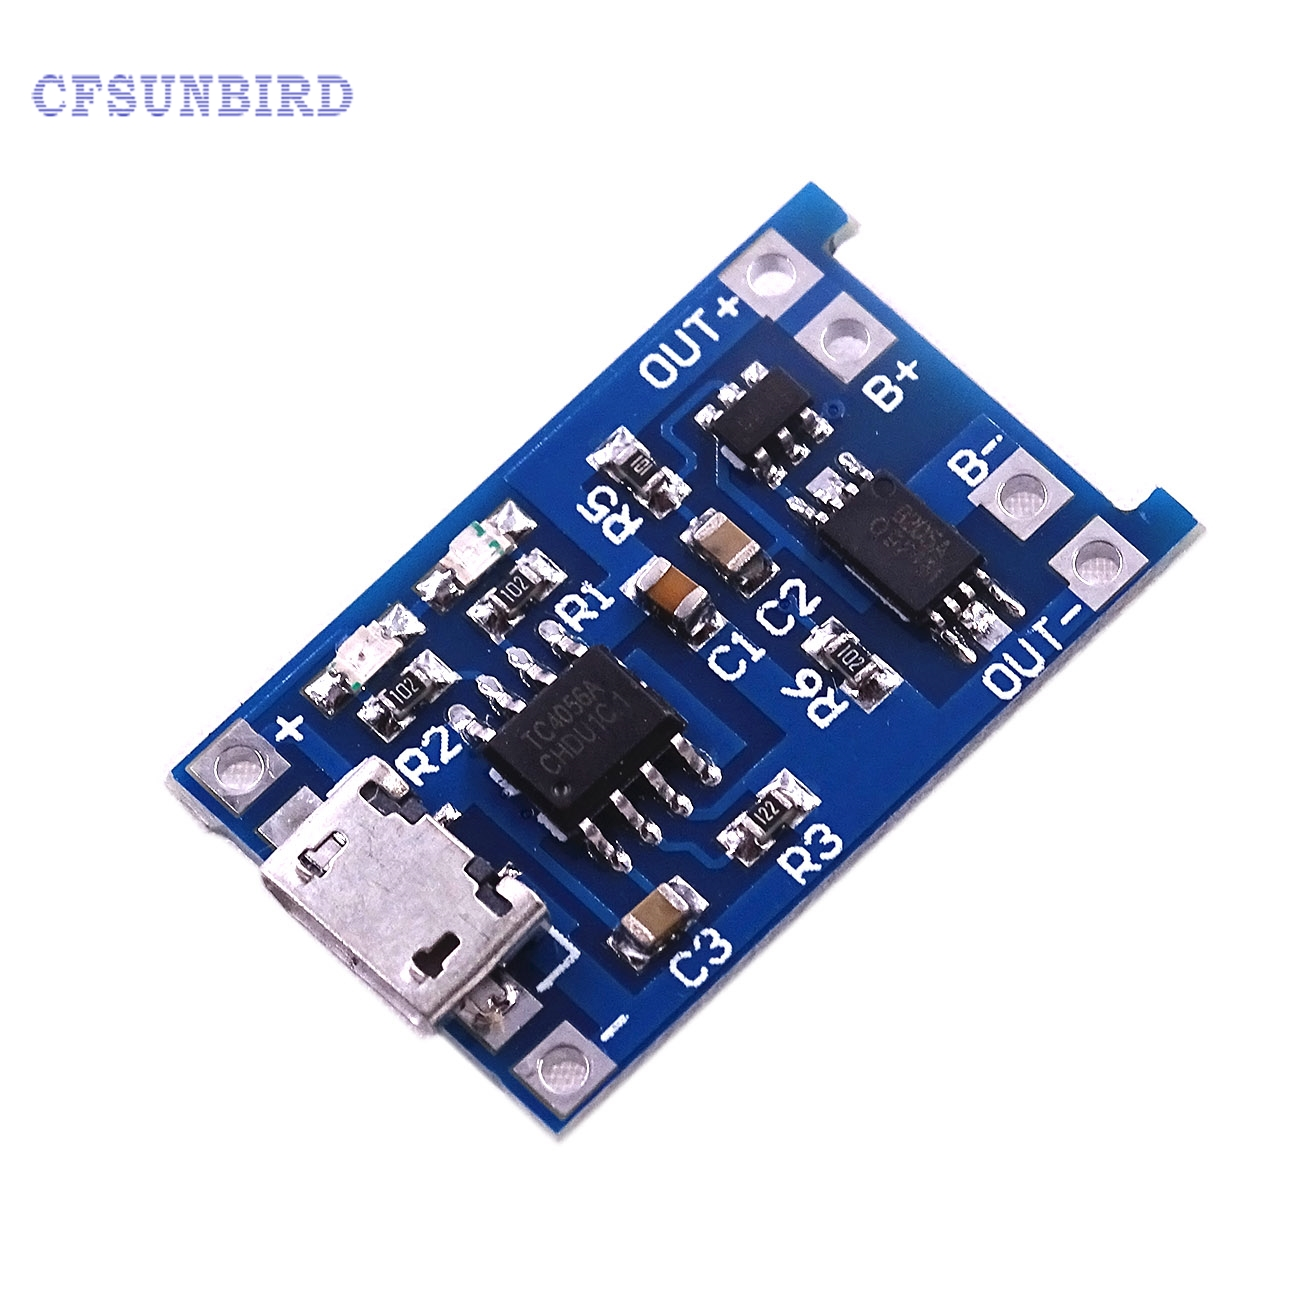 1000pcs Micro USB 5V 1A 18650 TP4056 Lithium Battery Charger Module Charging Board With Protection Dual Functions 4pcs micro usb 5v 1a 18650 tp4056 lithium battery charger module lipo charging board with dual functions automatic protection